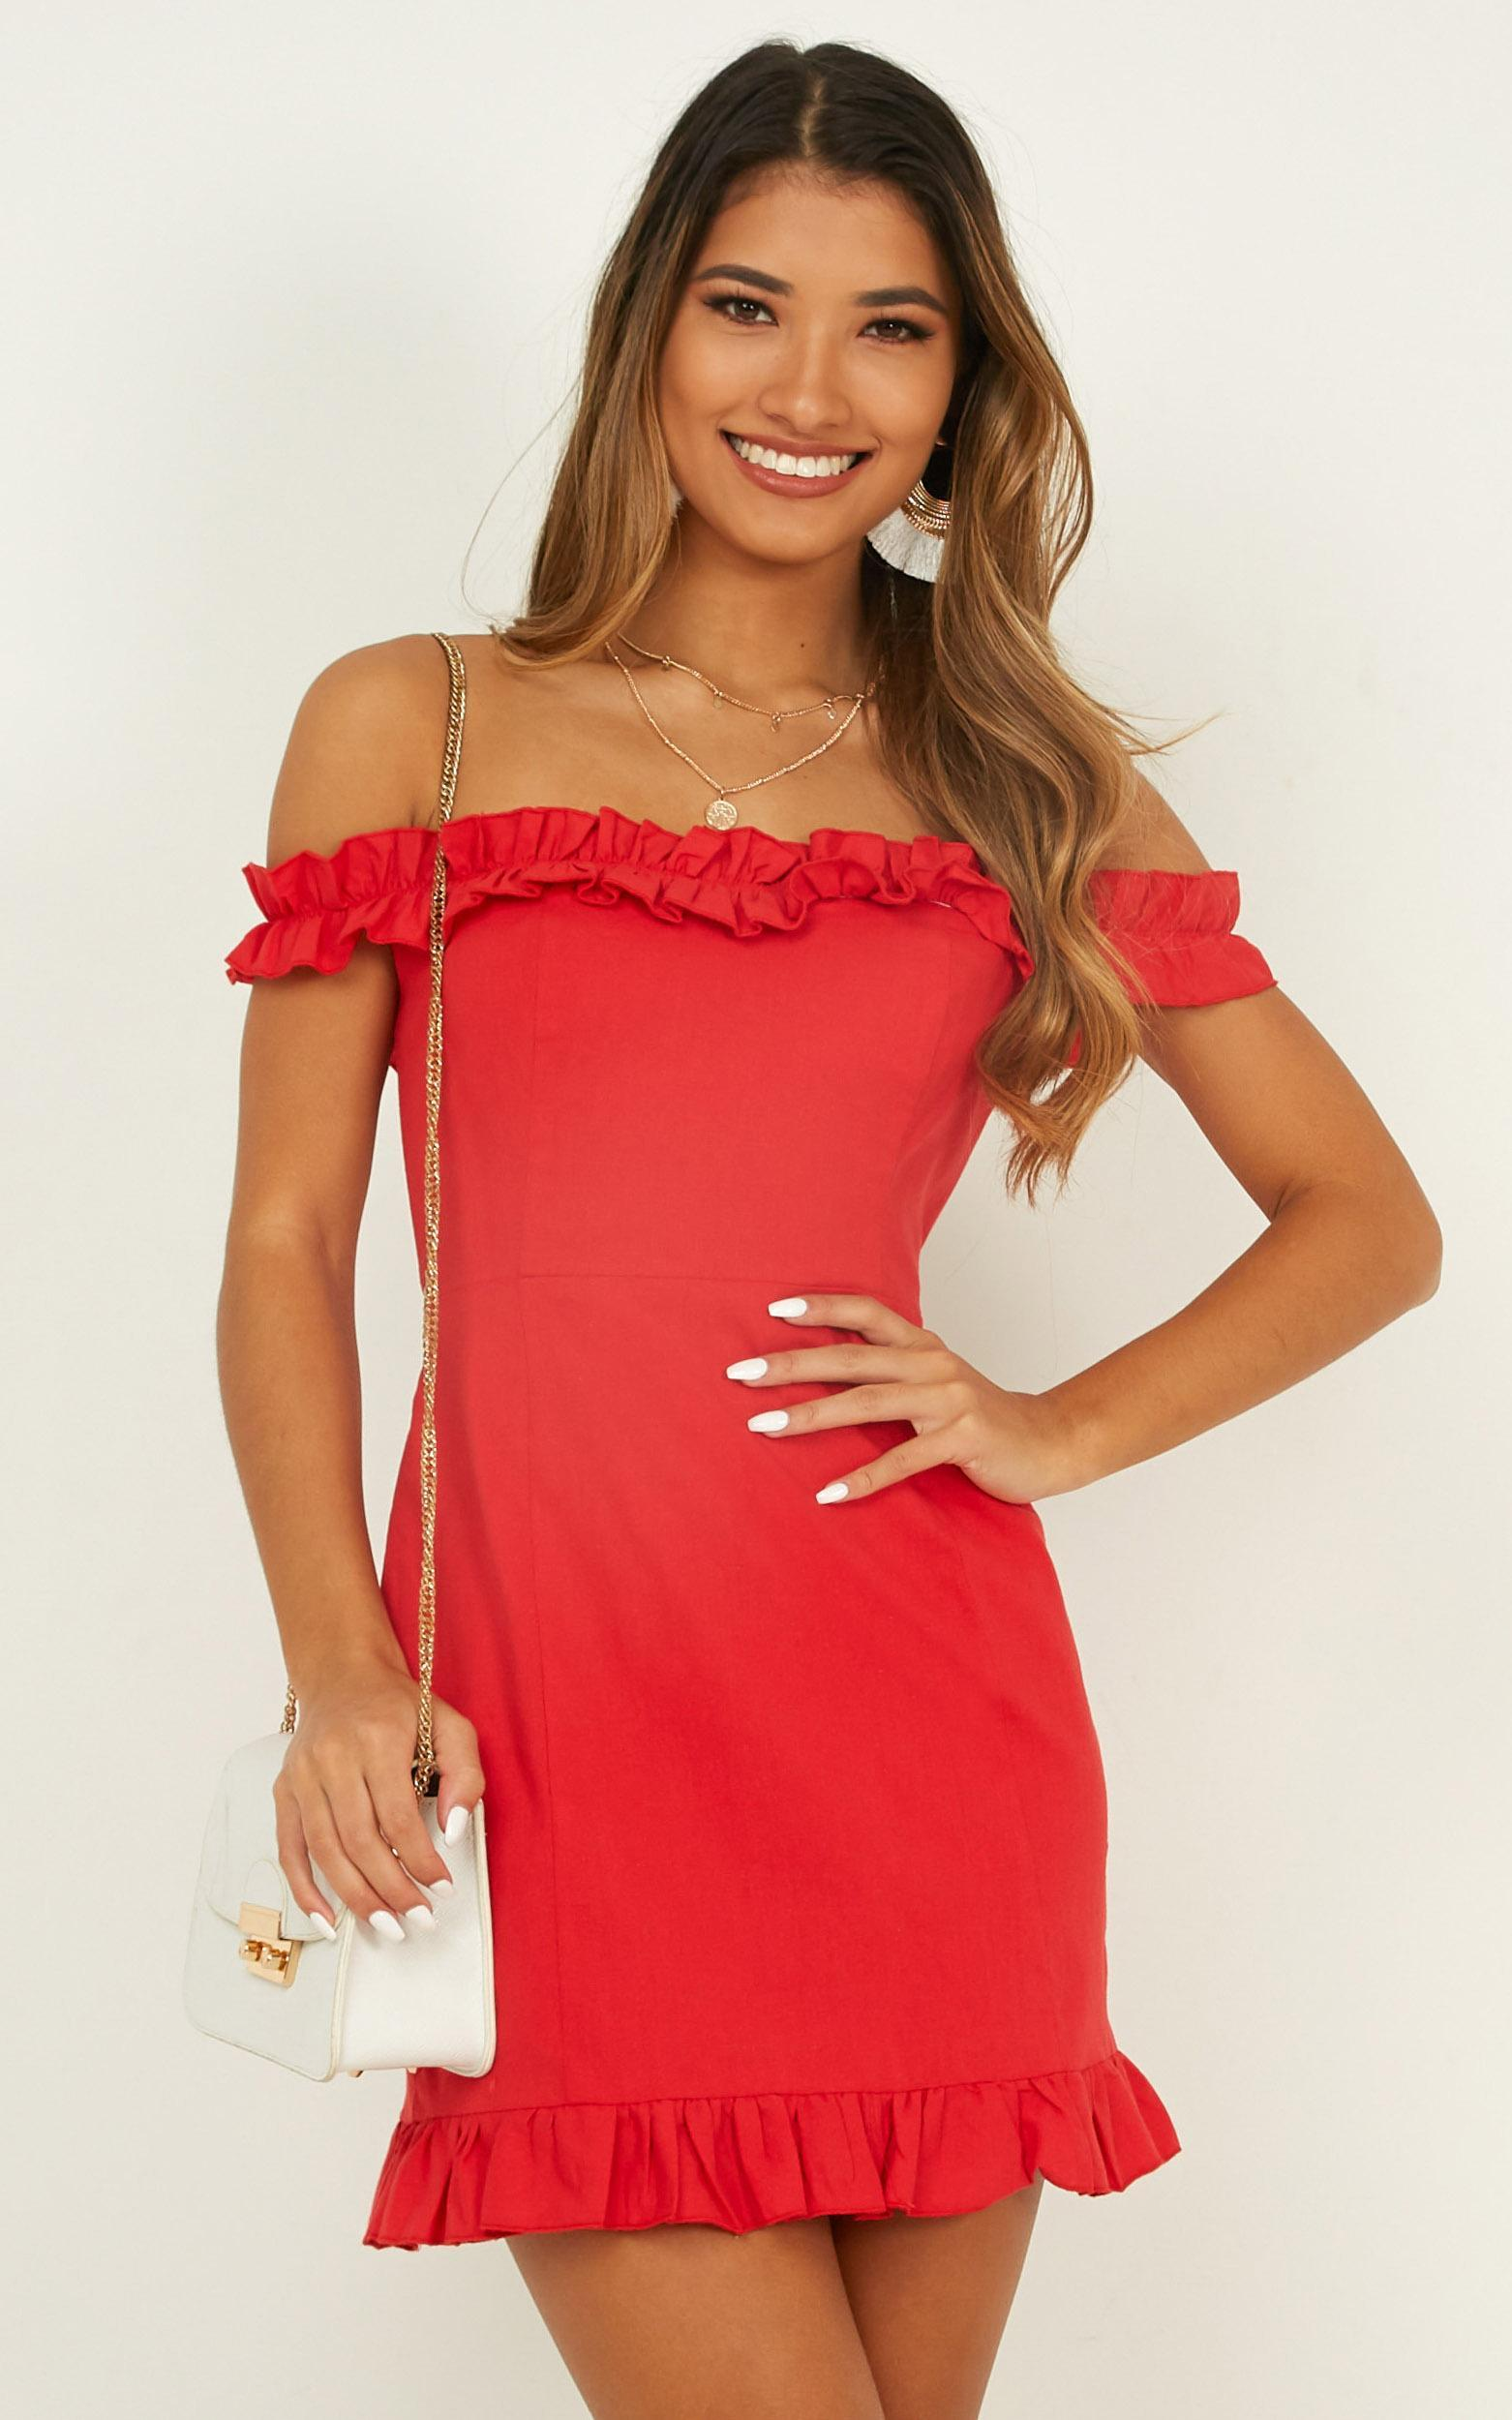 Days of Summer Dress in Red - 06, RED3, hi-res image number null